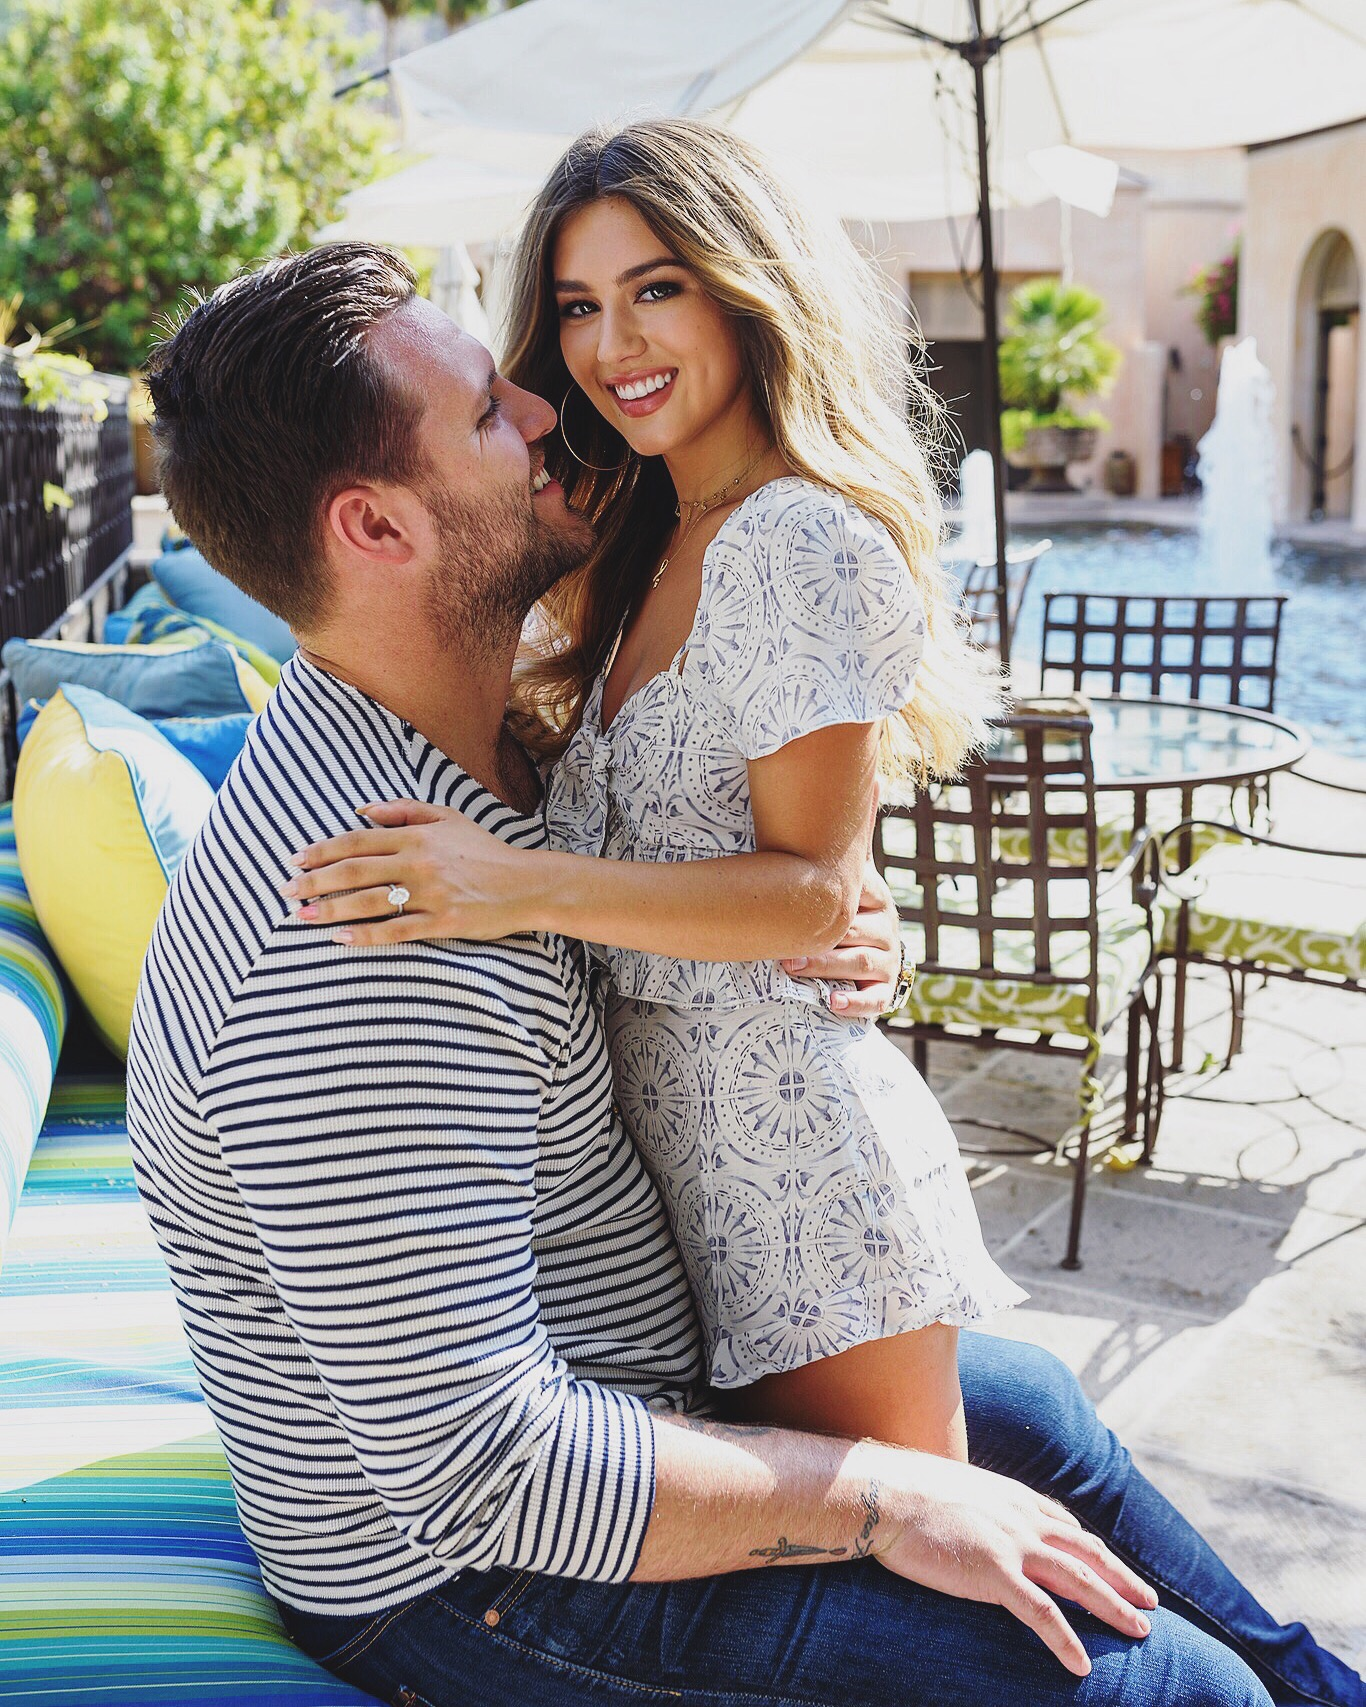 Proposal Ideas Our home in Scottsdale